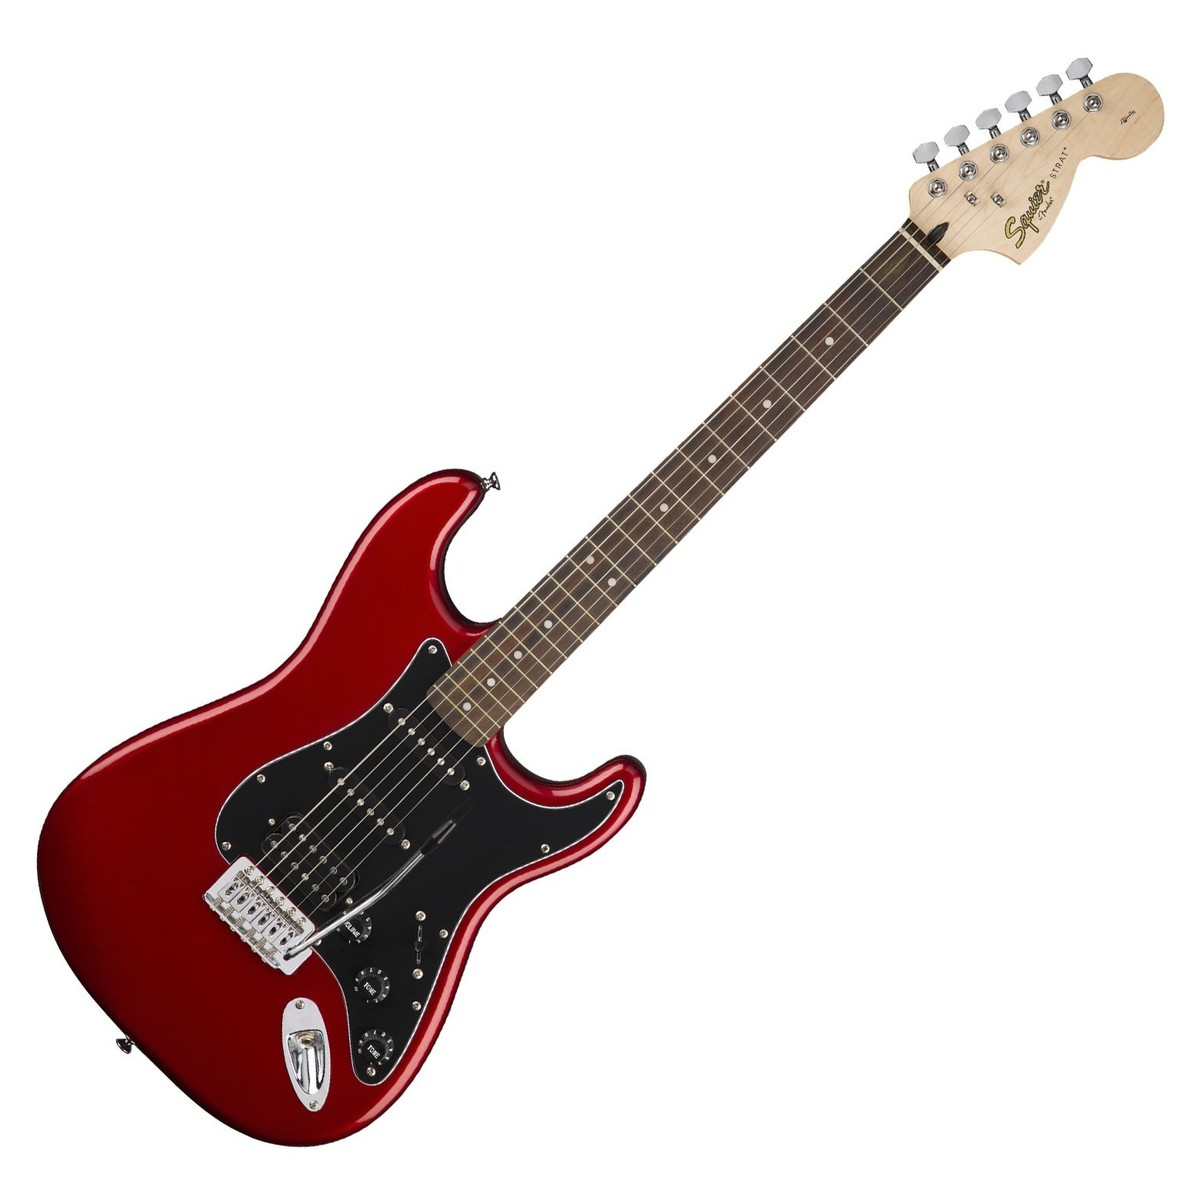 squier affinity stratocaster hss pack candy apple red at gear4music. Black Bedroom Furniture Sets. Home Design Ideas